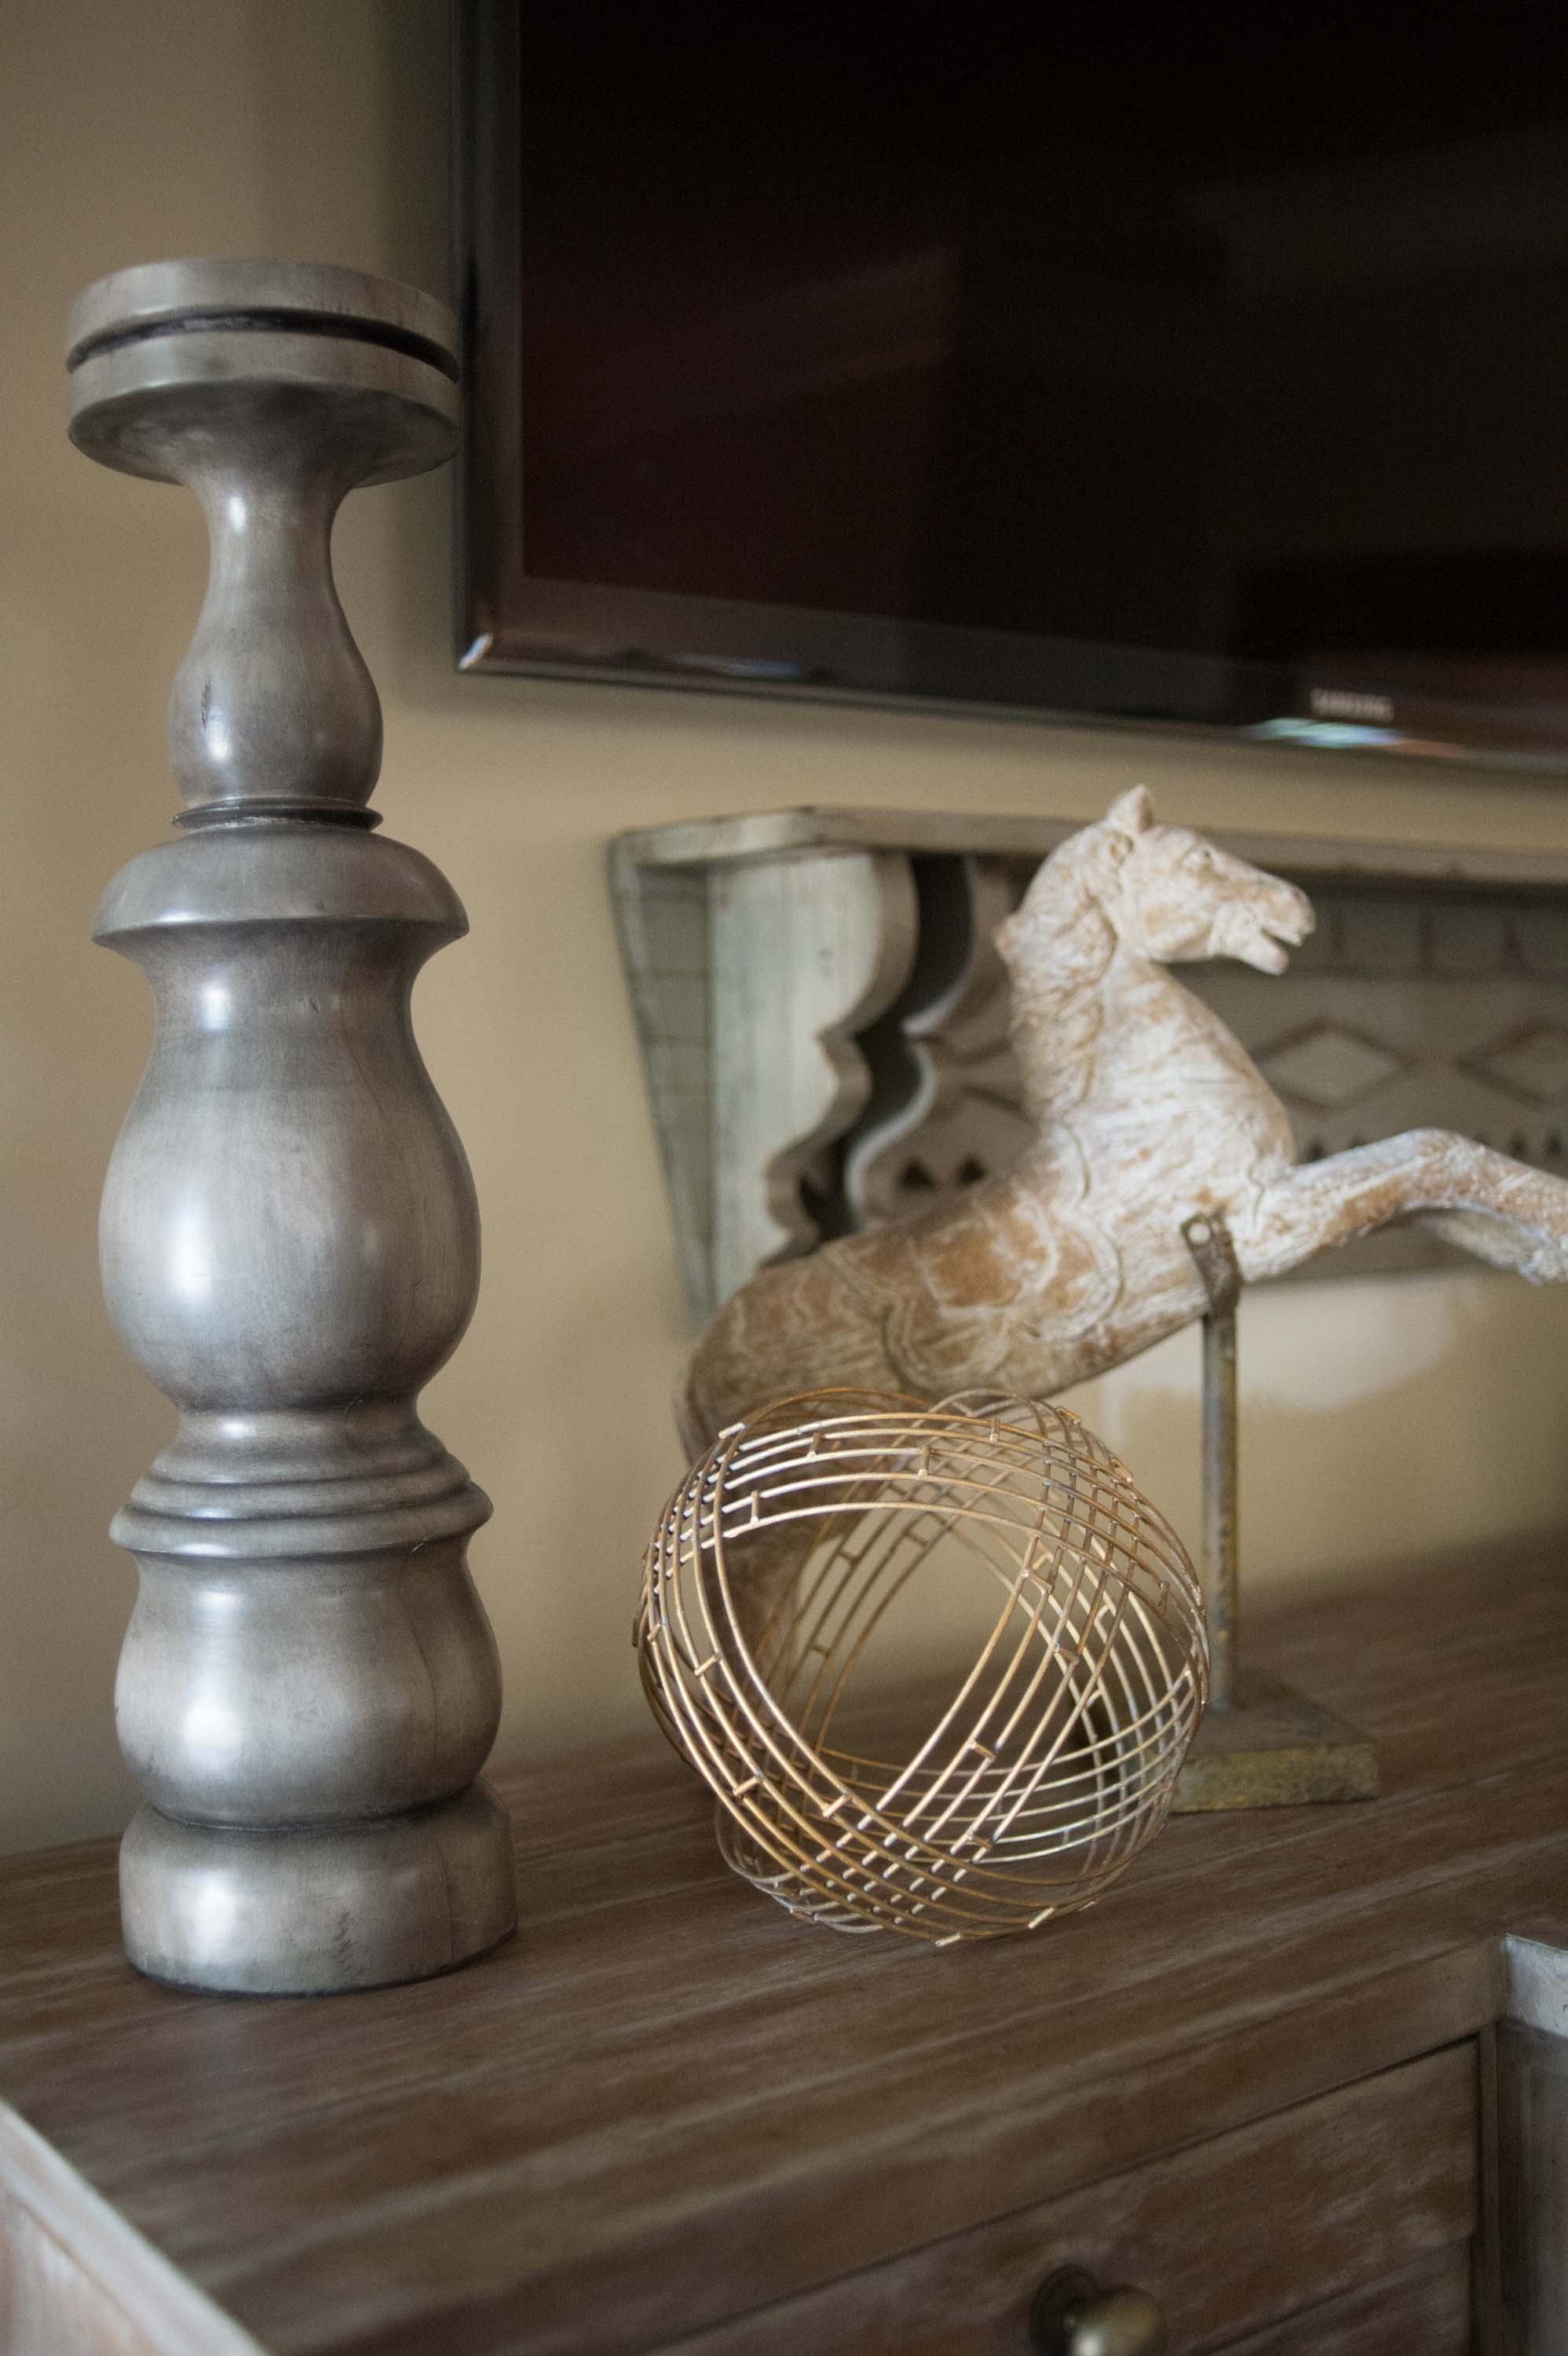 Accessories to include horse, Candlesticks